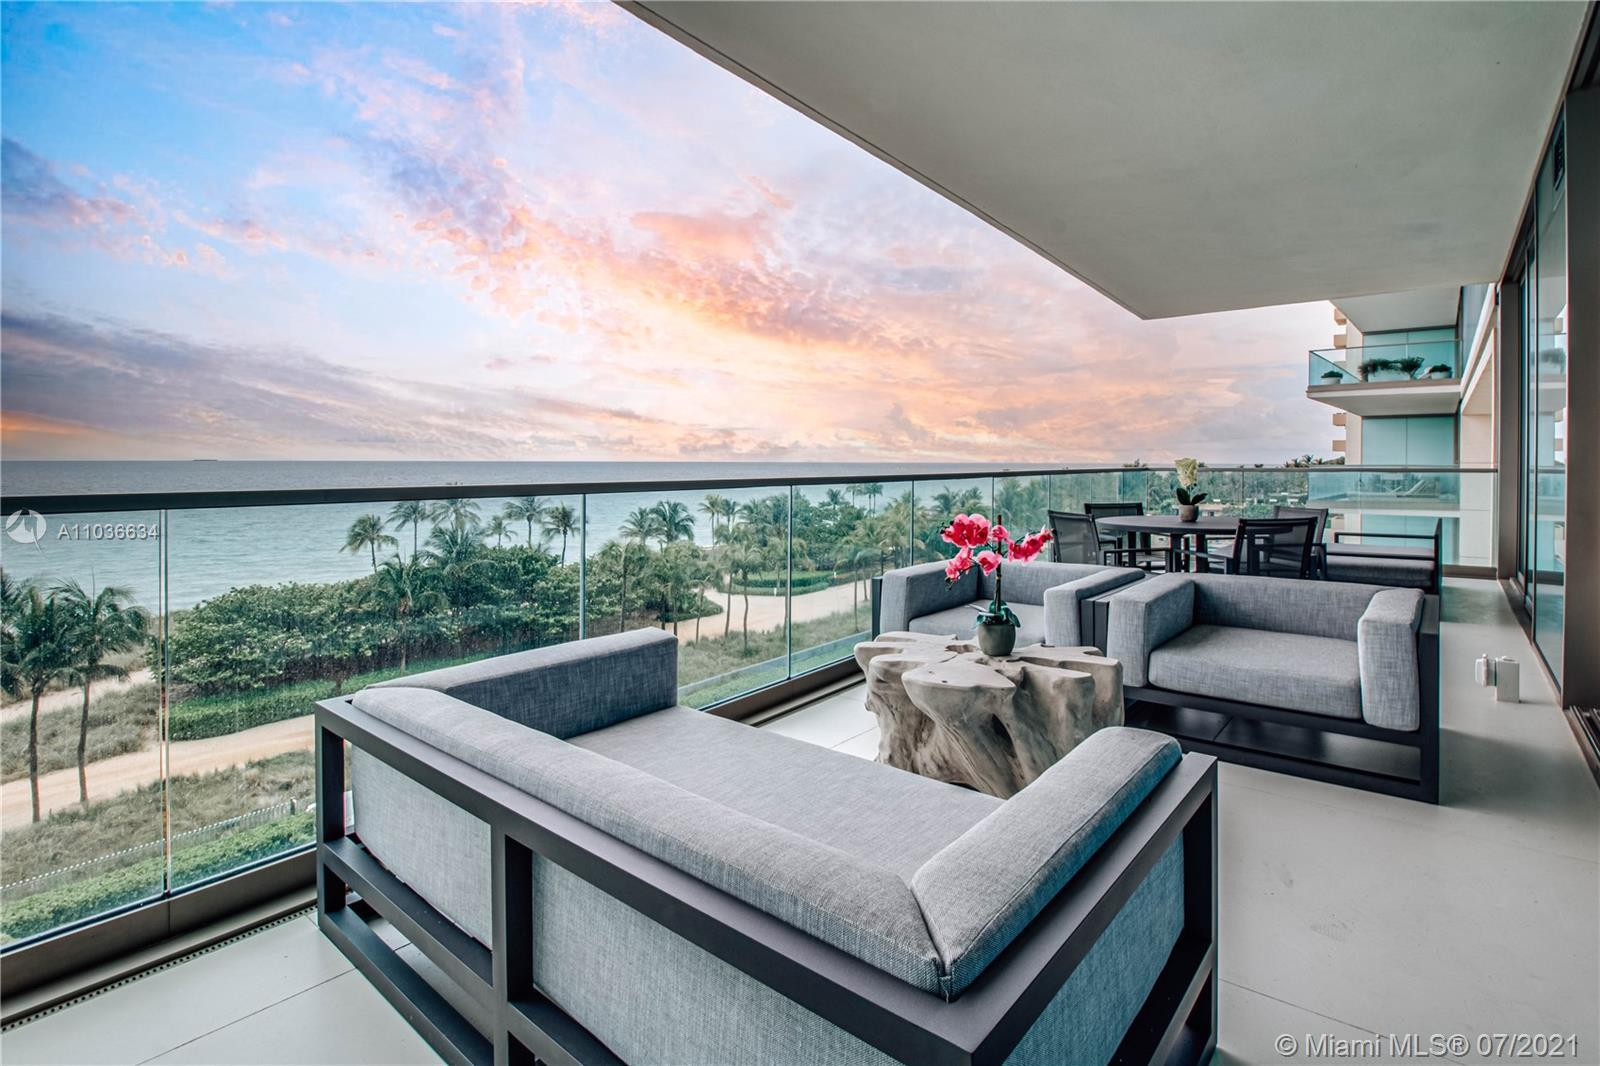 Live Limitlessly in this stylish oceanfront unit at Oceana Bal Harbour North Tower - a spacious inte